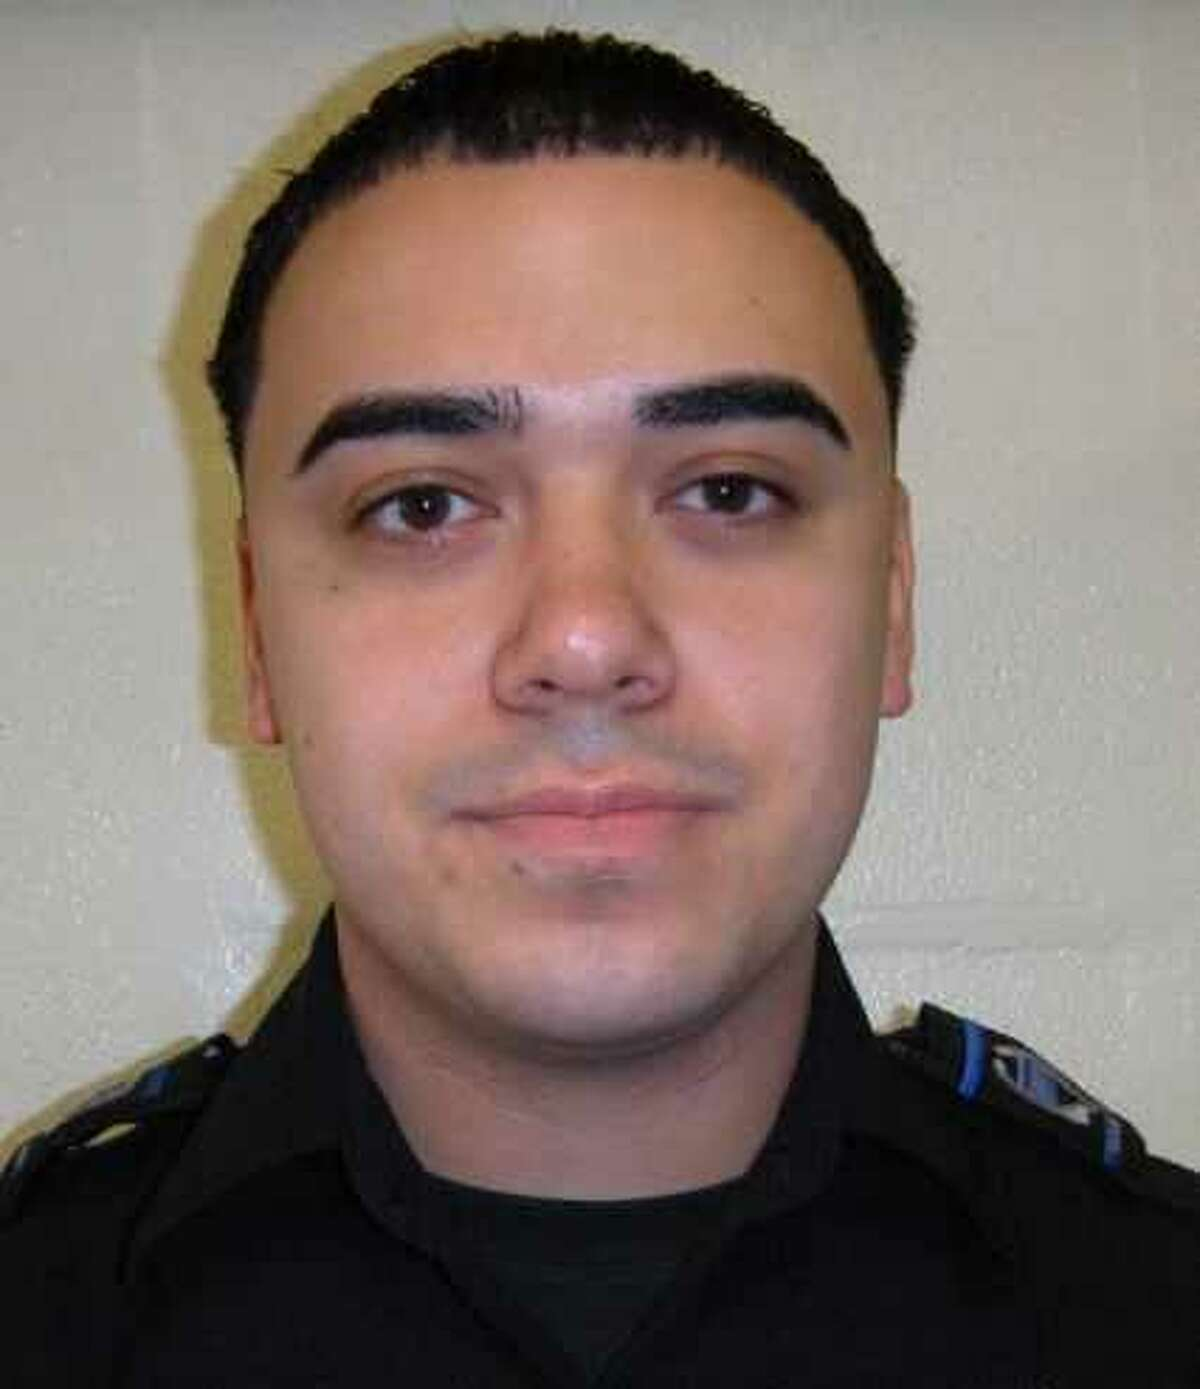 Heriberto Alejandro Rivera, 25, a Bexar County deputy, was charged with DWI and possession of a controlled substance.